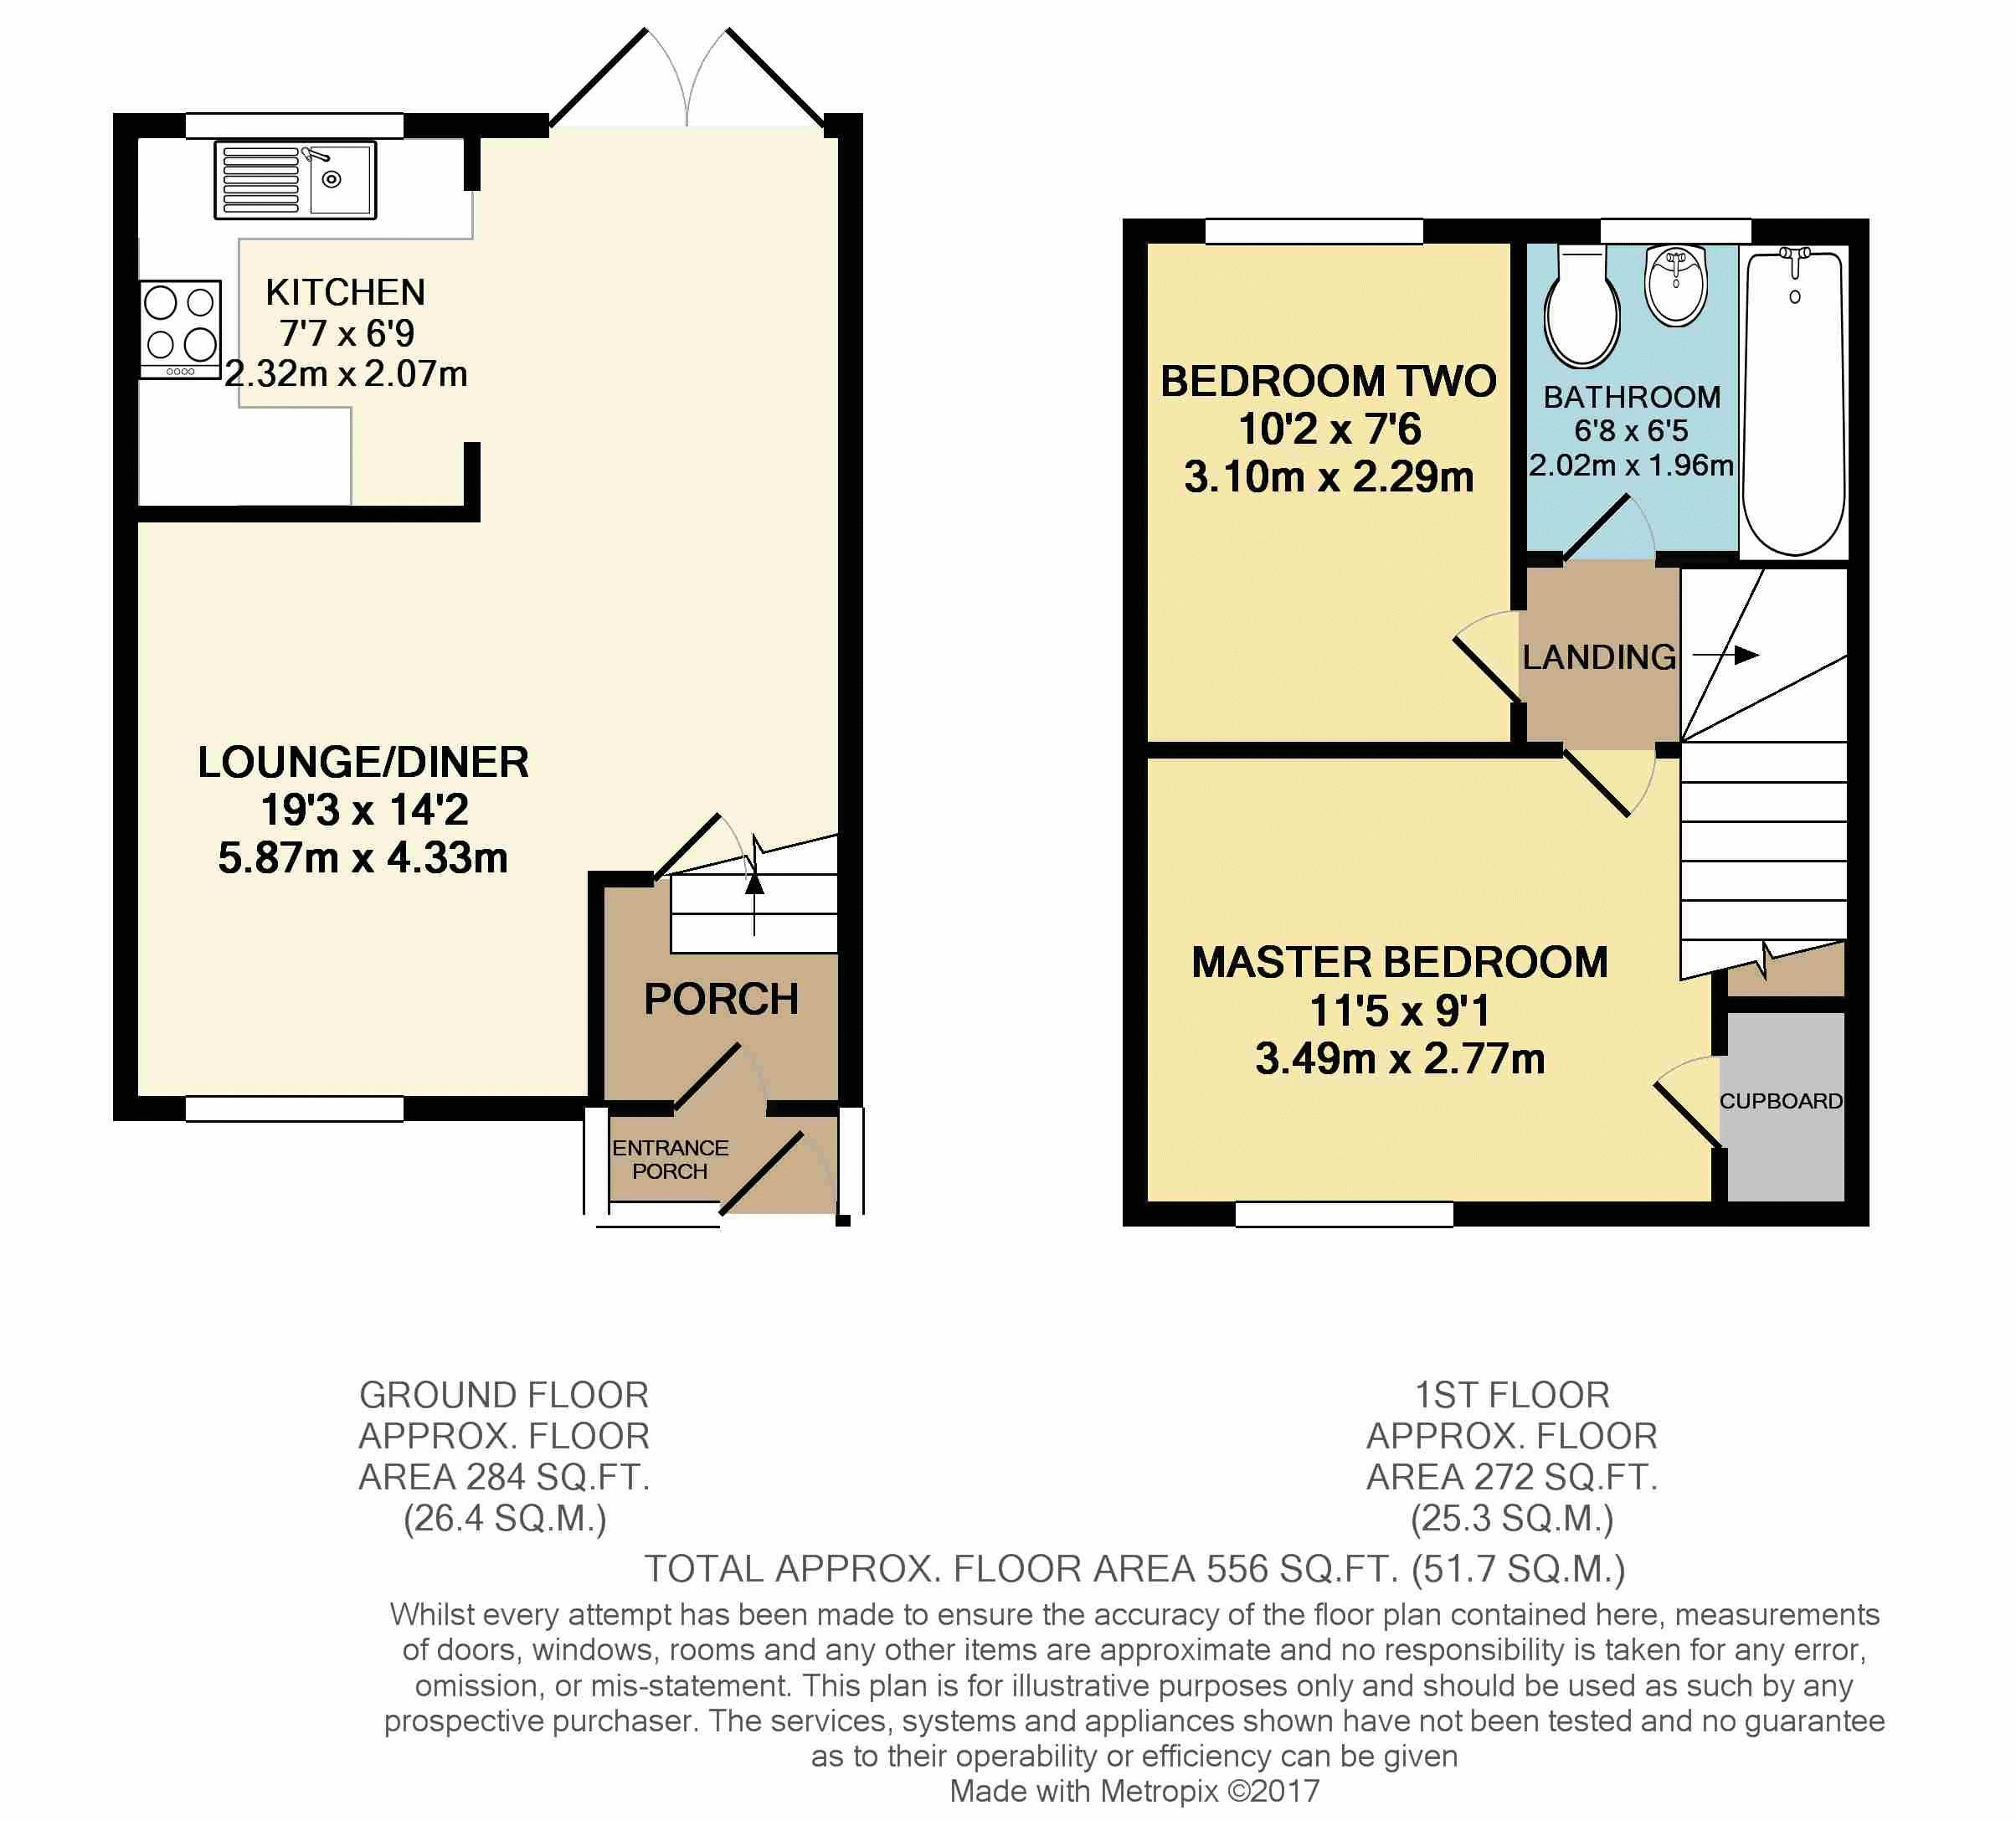 2 bedroom house for sale in milton keynes for How much is a bathroom worth on an appraisal